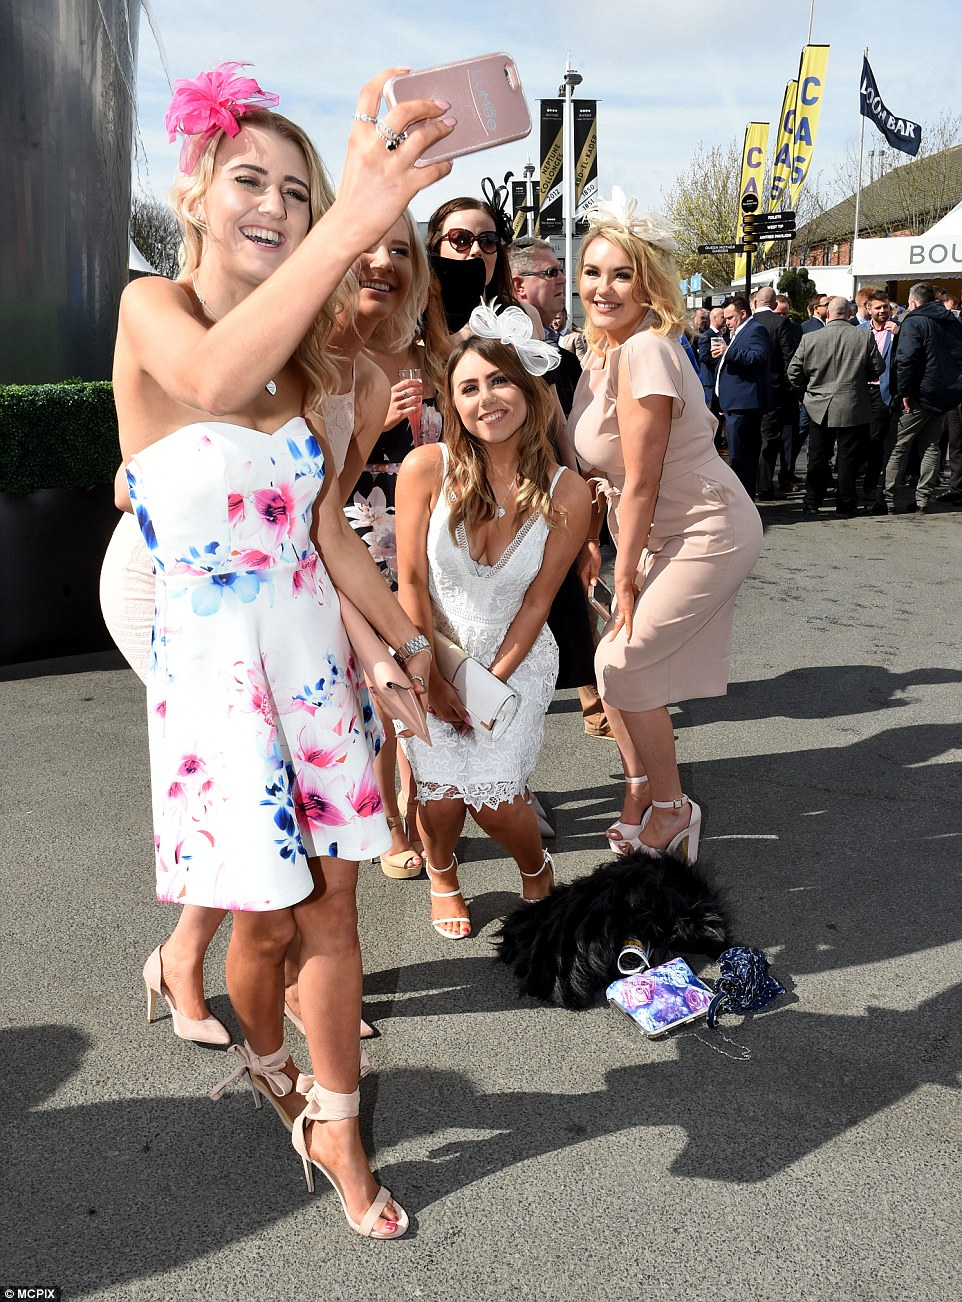 But first let me take a selfie: A group of girls posed for a photo to commemorate their big day out